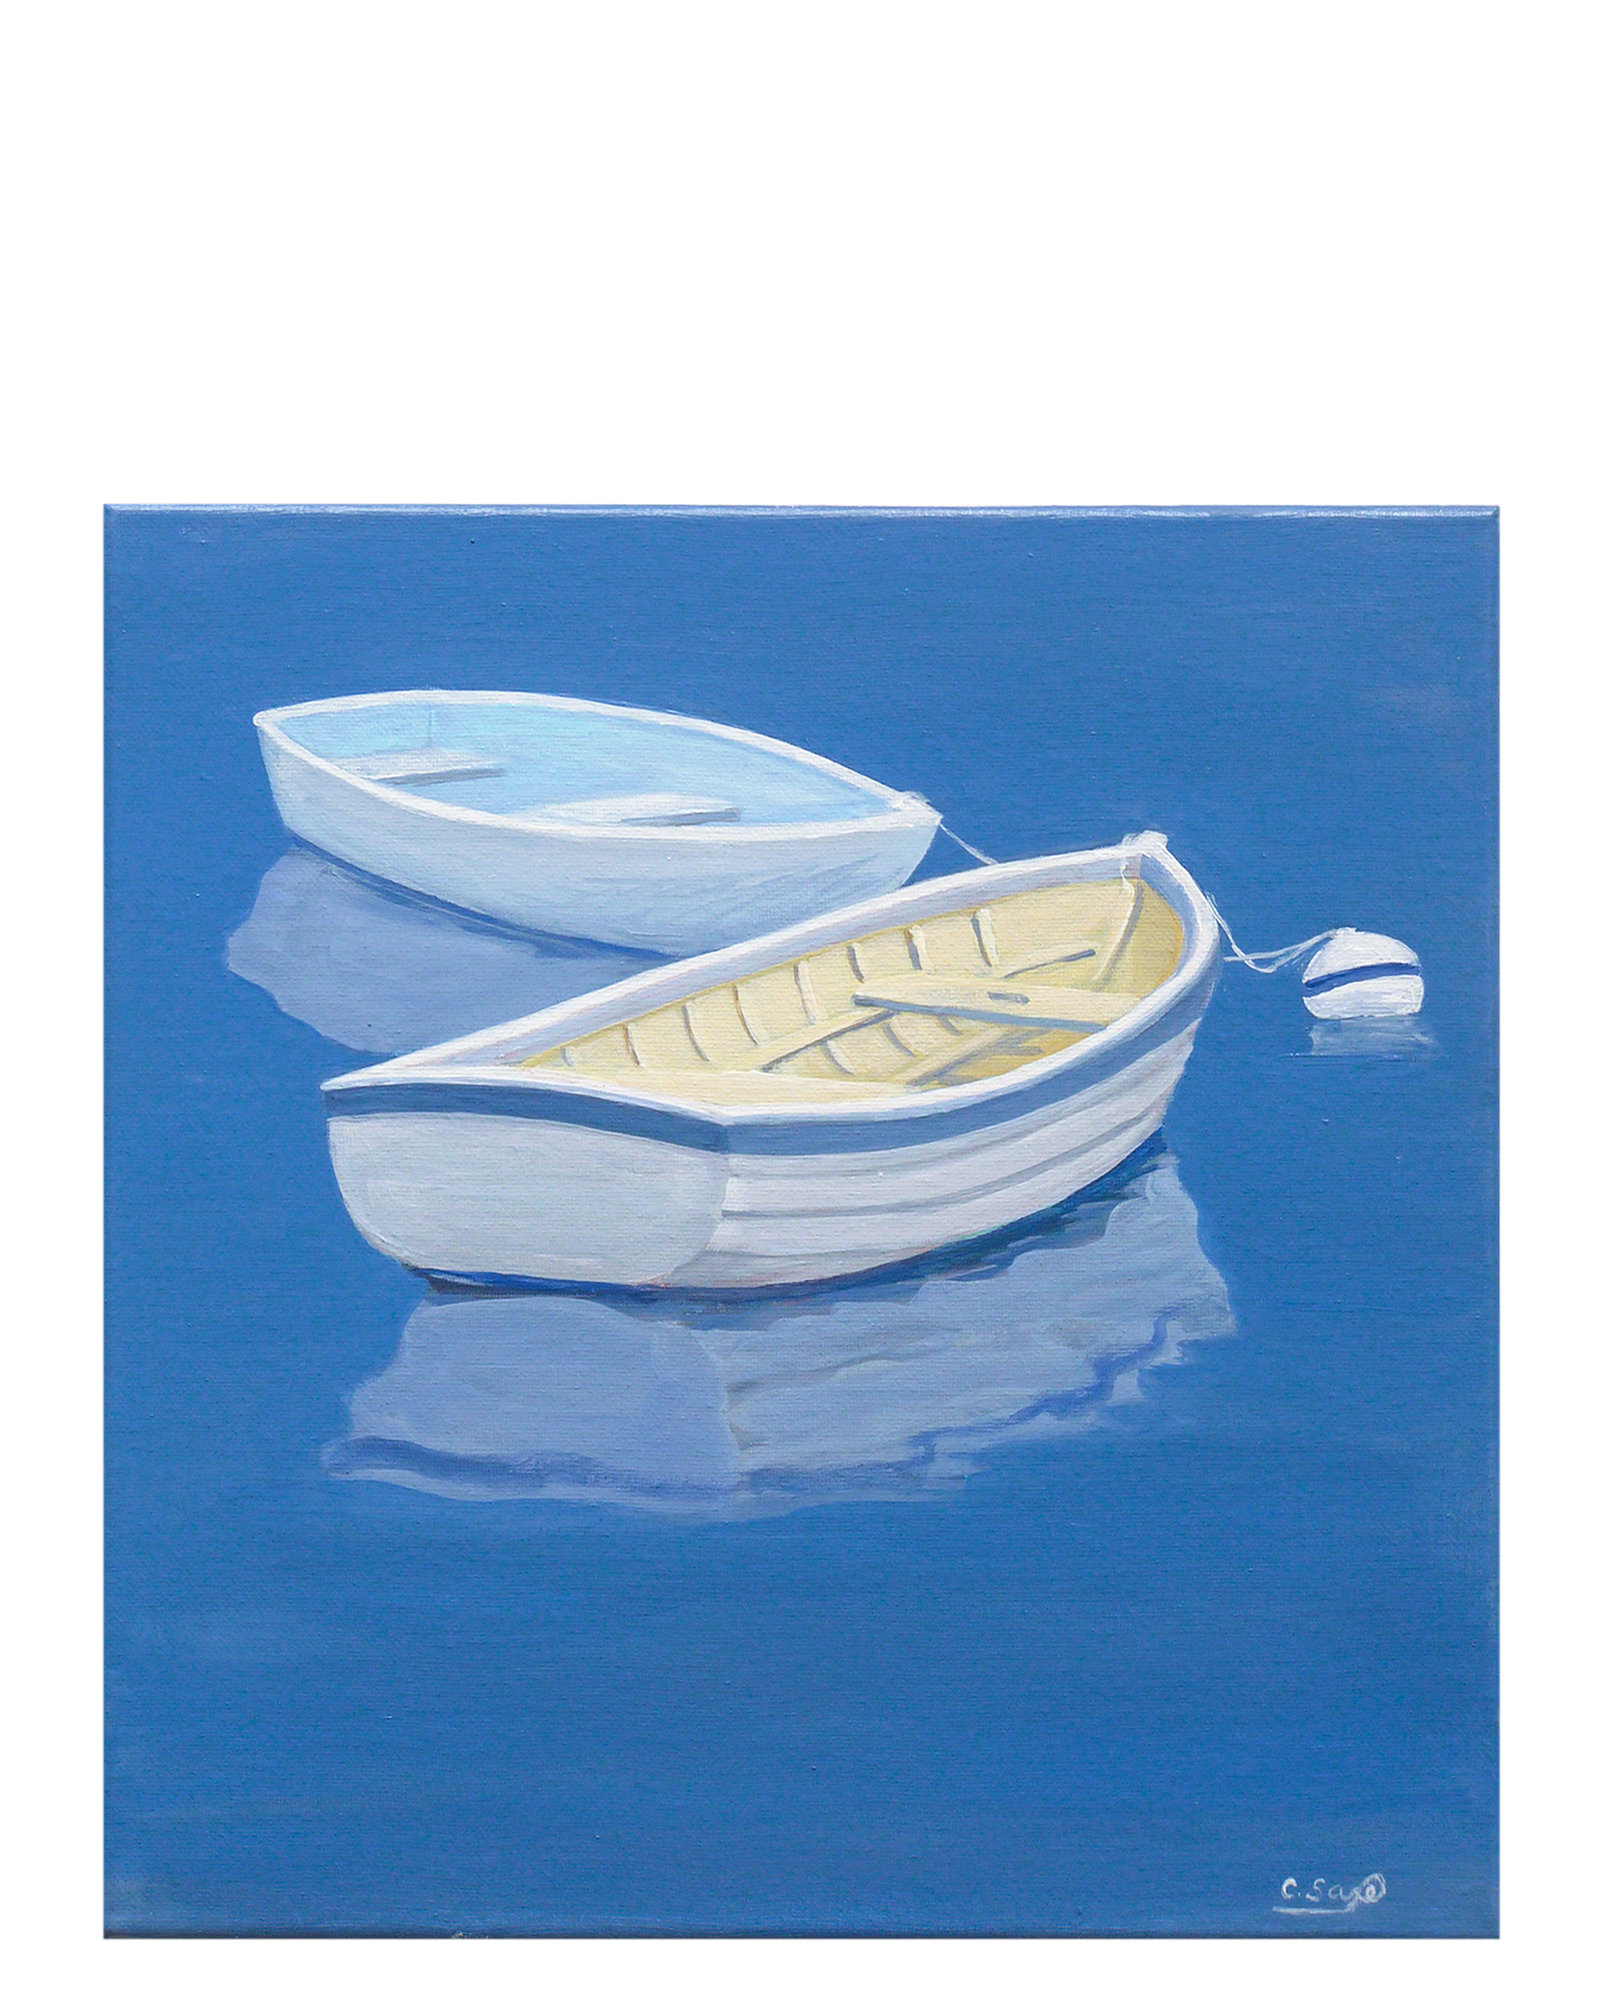 """Moored Dinghies"" by Carol Saxe,"